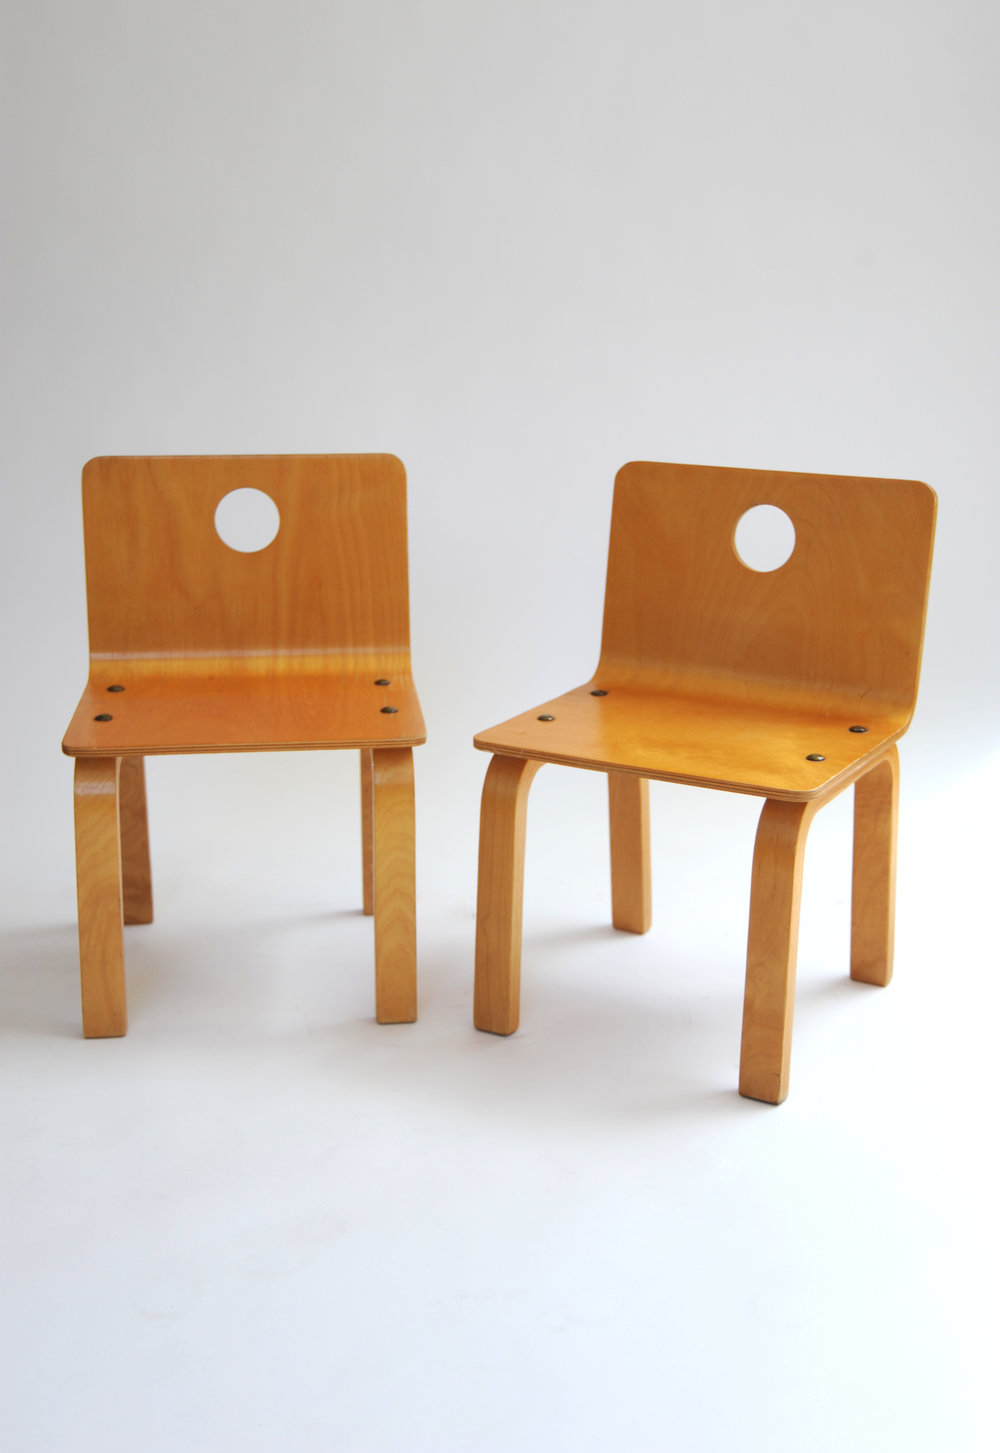 ALVAR AALTO STYLE CHILD CHAIR WITH CIRCLE-CUT OUT (Pair)    Attr. to Alvar Aalto    Finland, 1960s    Molded Ply    H 17 in, W 11.125 in, D 11 in (Seat: D 9.5 in) (Seat: H 9.5 in)    NOTES: 160 EUR (including shipping)    LIST PRICE: $650    DESIGNER DISCOUNT PRICE: $552.50    LEAD TIME: 3-5 Days Shipping & Handling     QUANTITY IN STOCK: 2    ONLINE PLATFORMS: KM WEB, ARTSY, 1ST DIBS